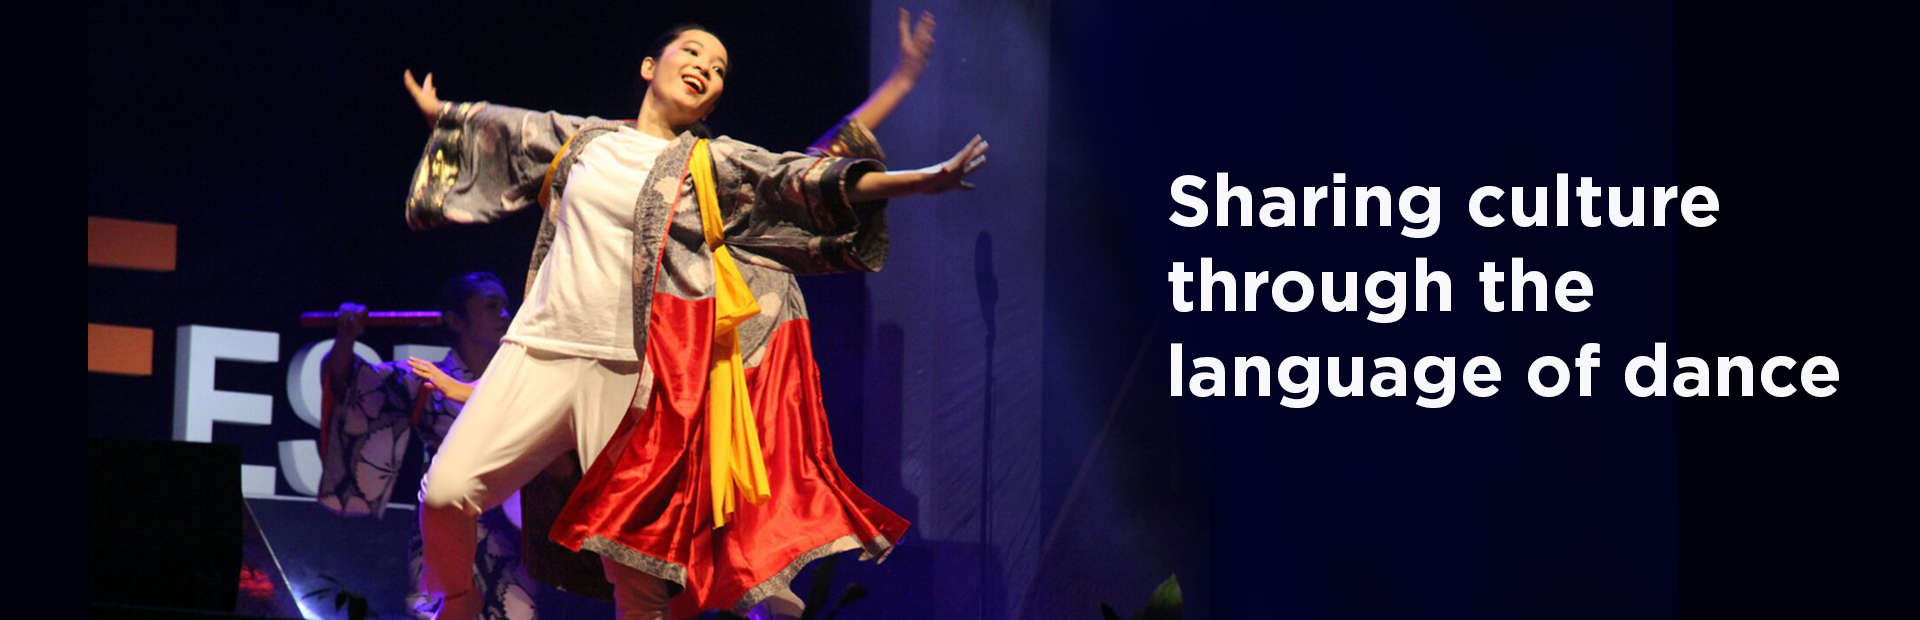 sharing-culture-through-the-language-of-dance